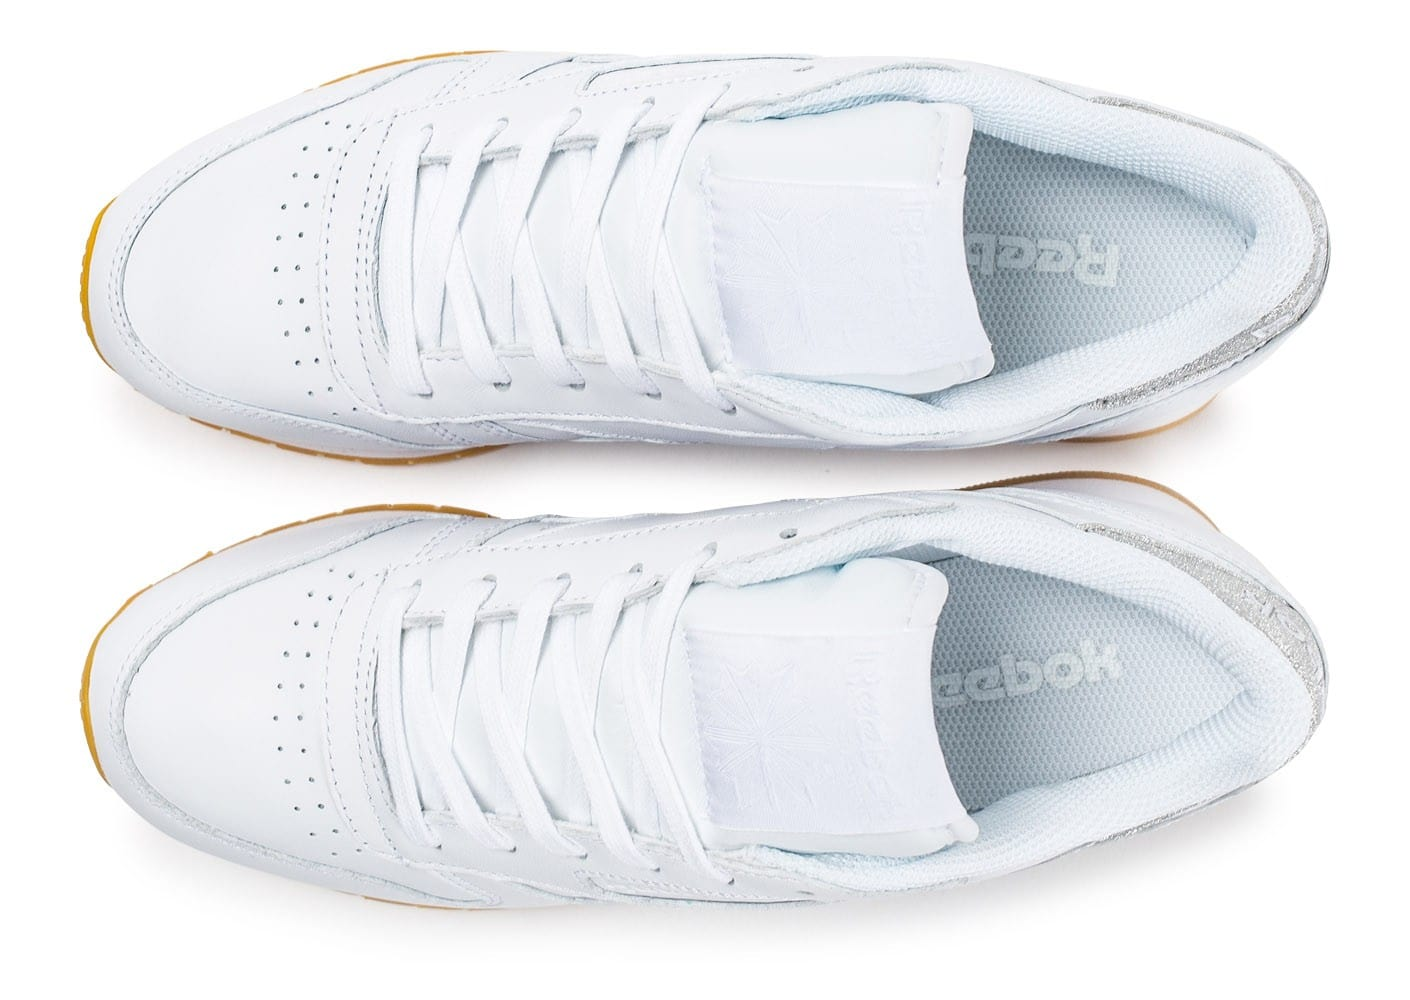 Diamond Baskets Blanche Leather Chaussures Gum Reebok Classic MpVUzS